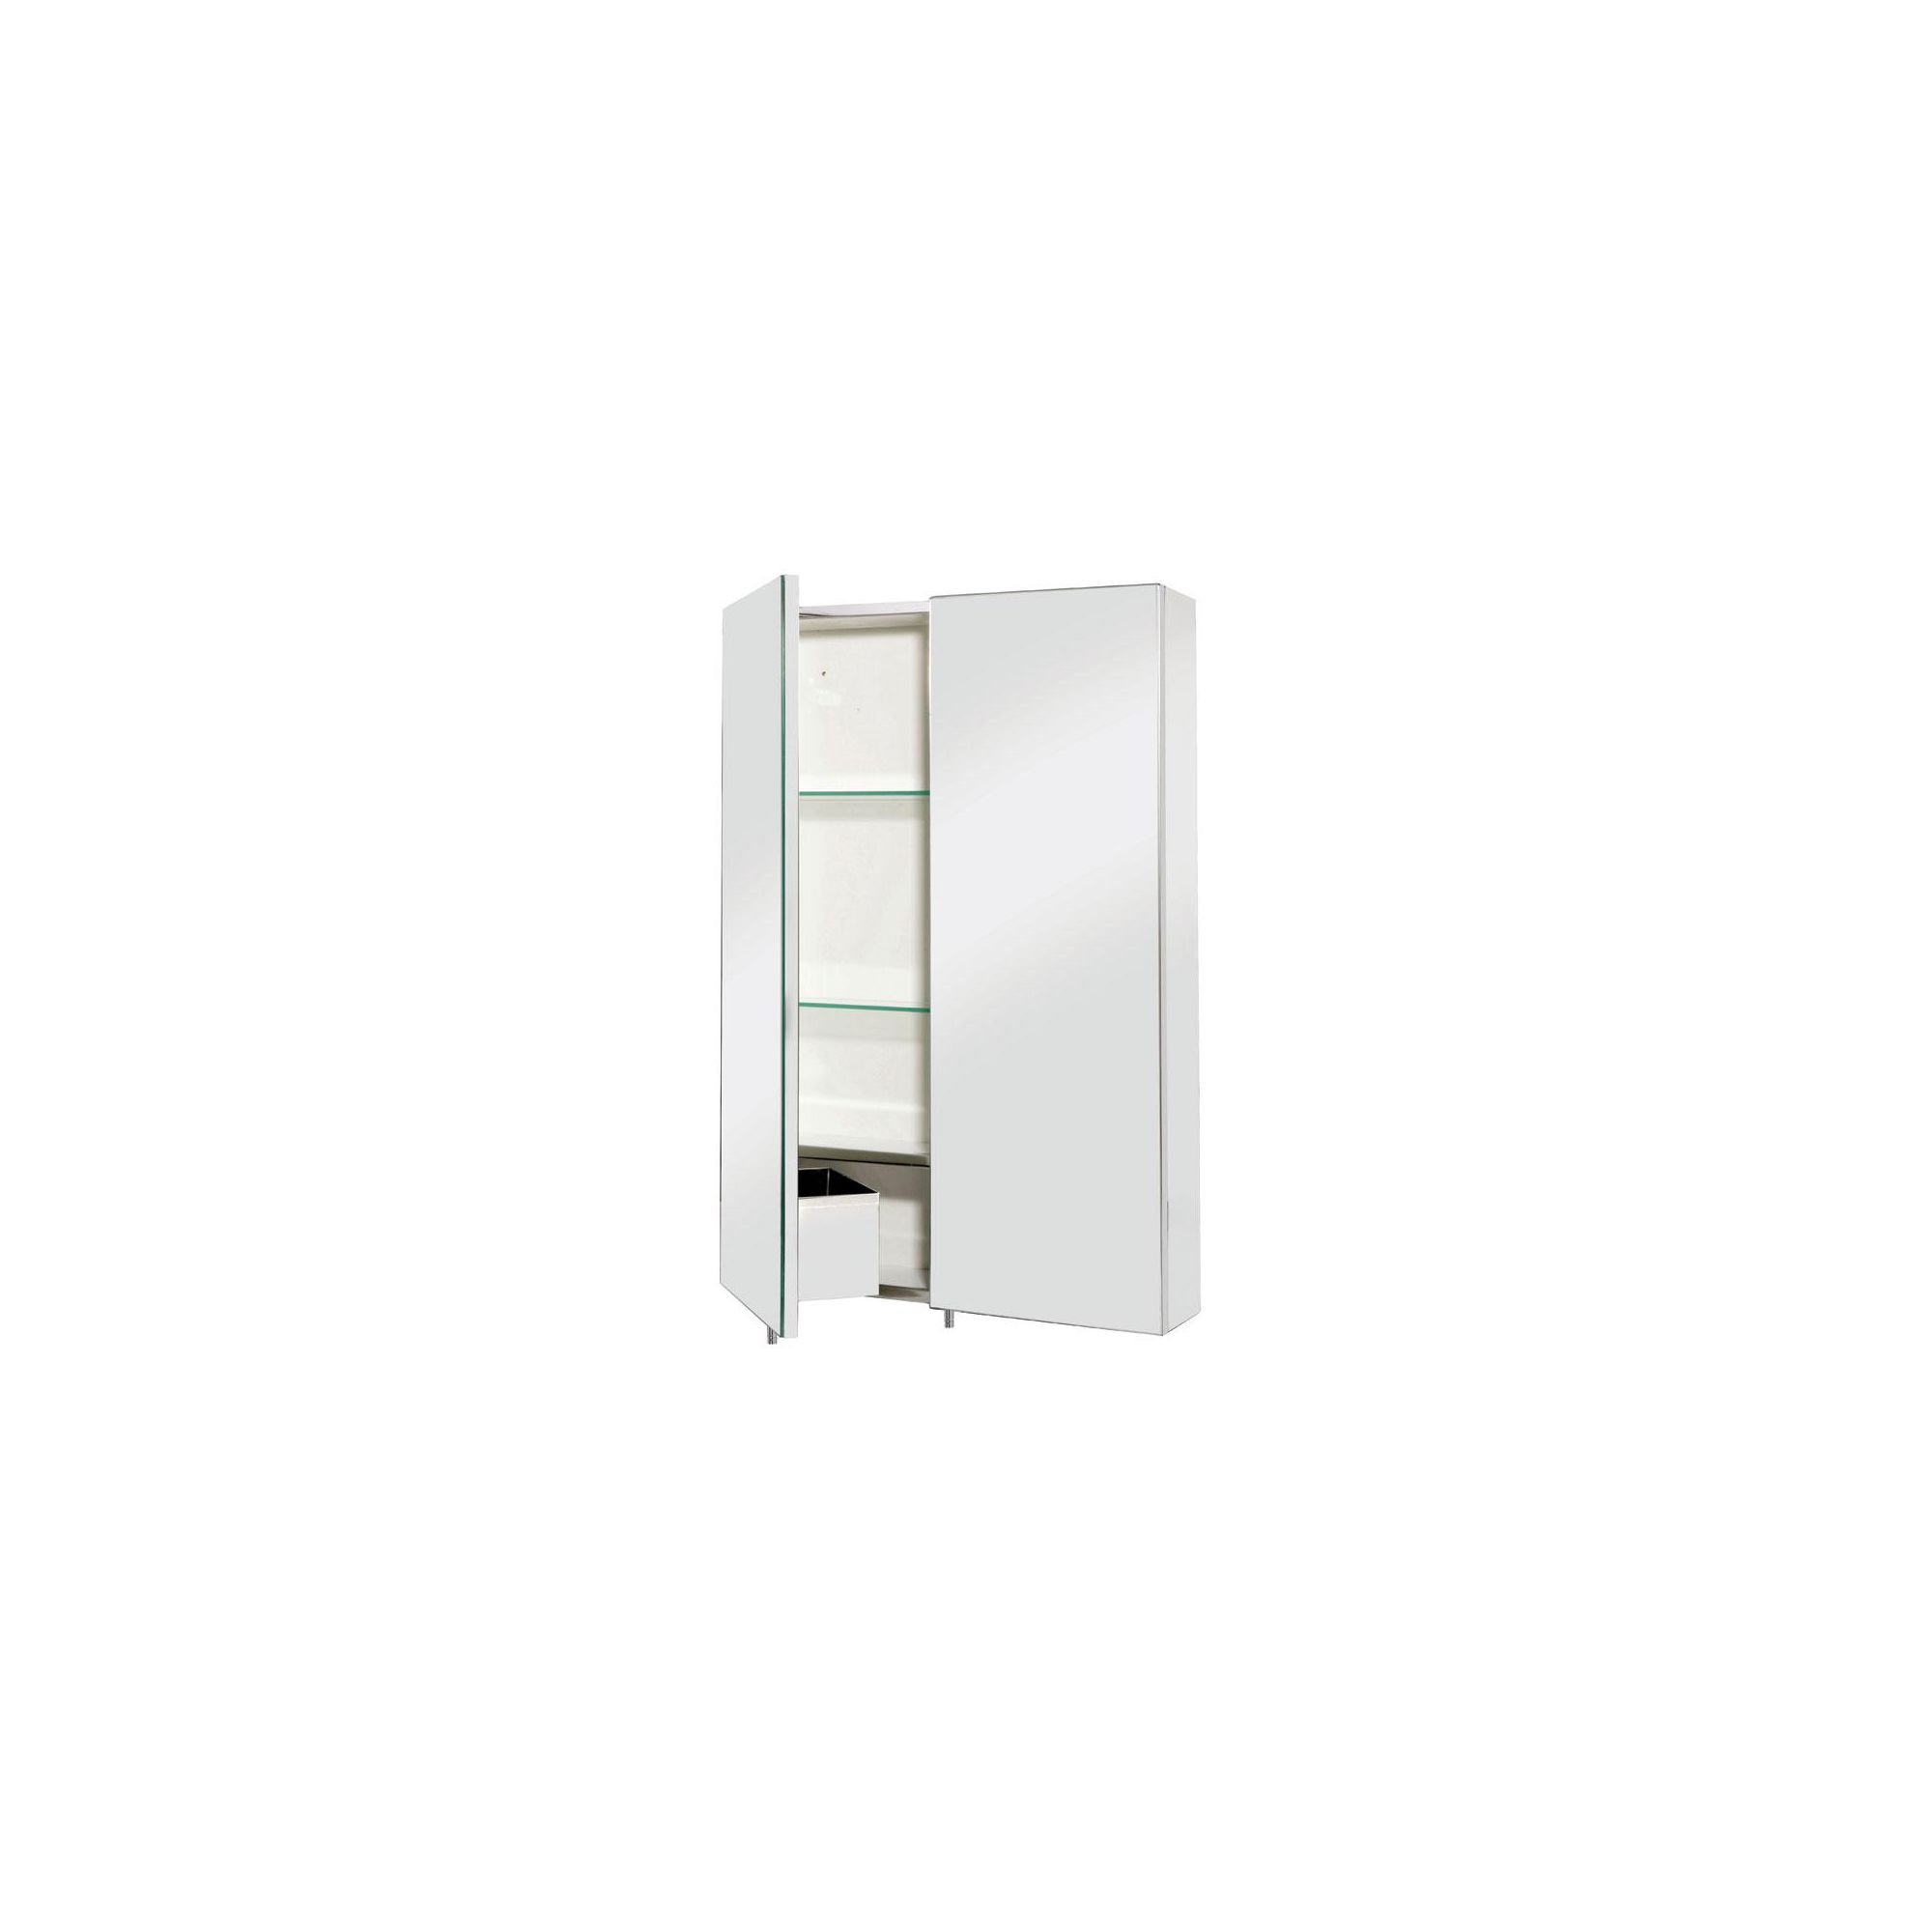 Croydex Colorado Large Double Door Stainless Steel Bathroom Cabinet